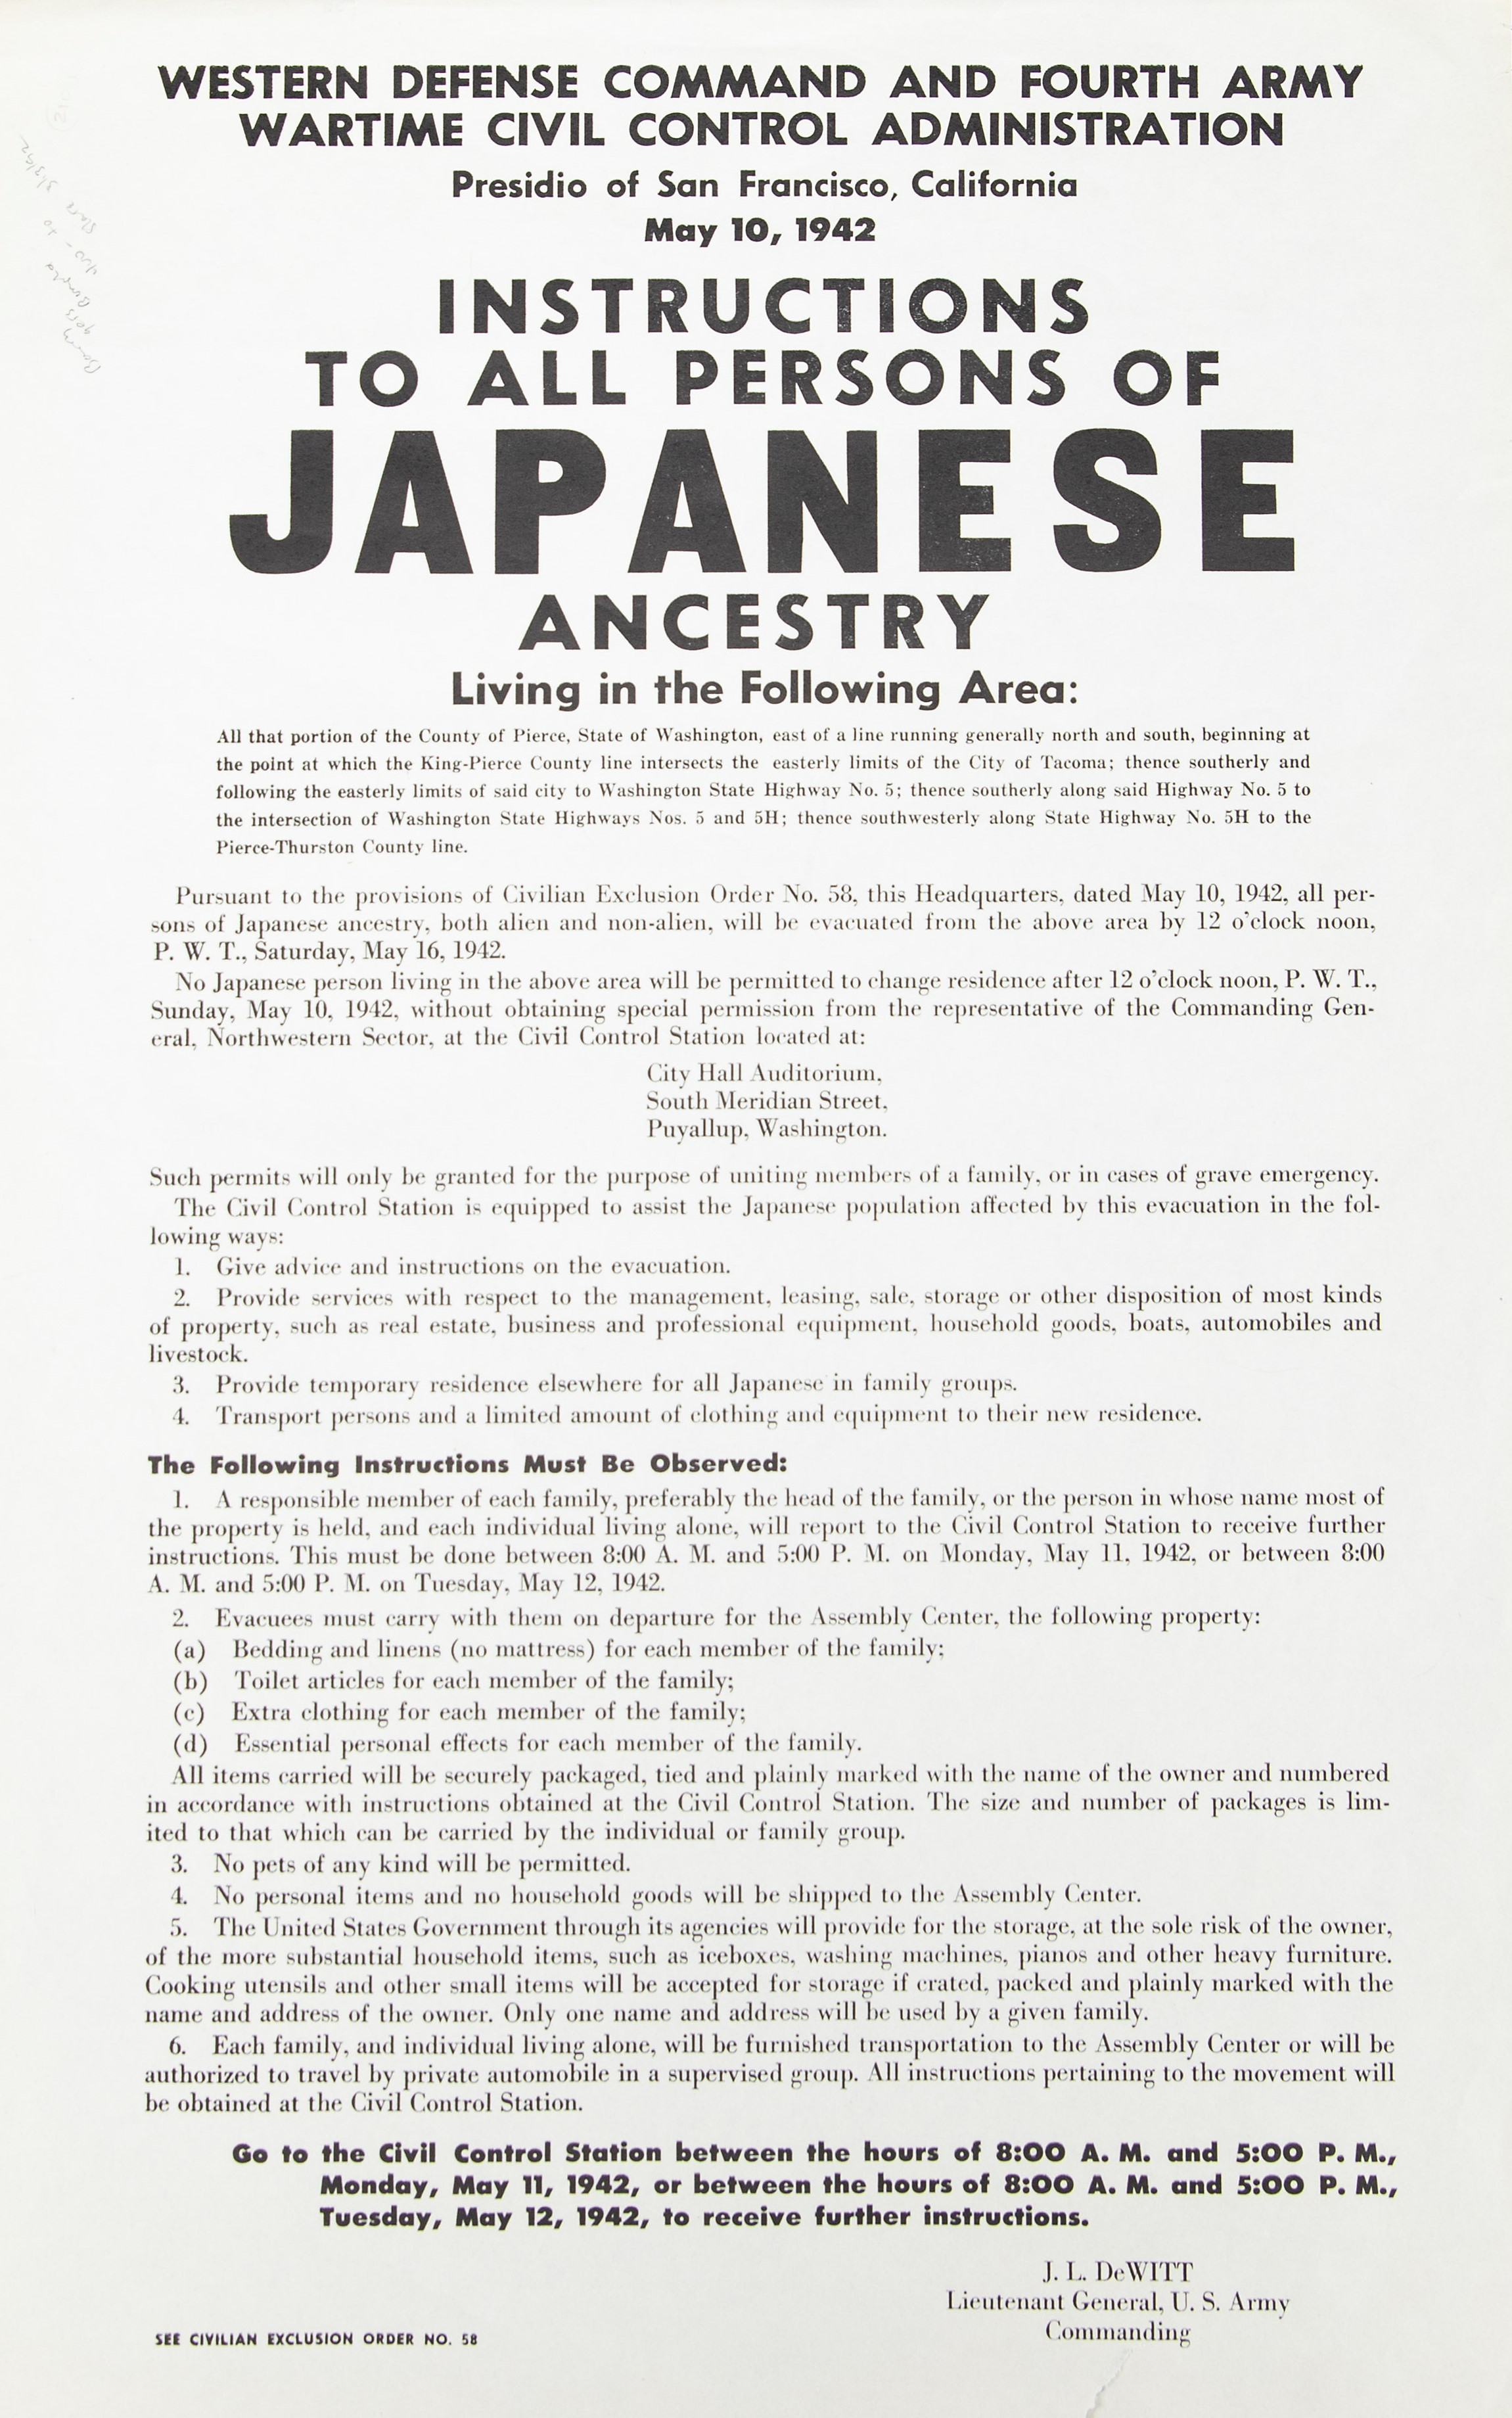 Image of poster titled